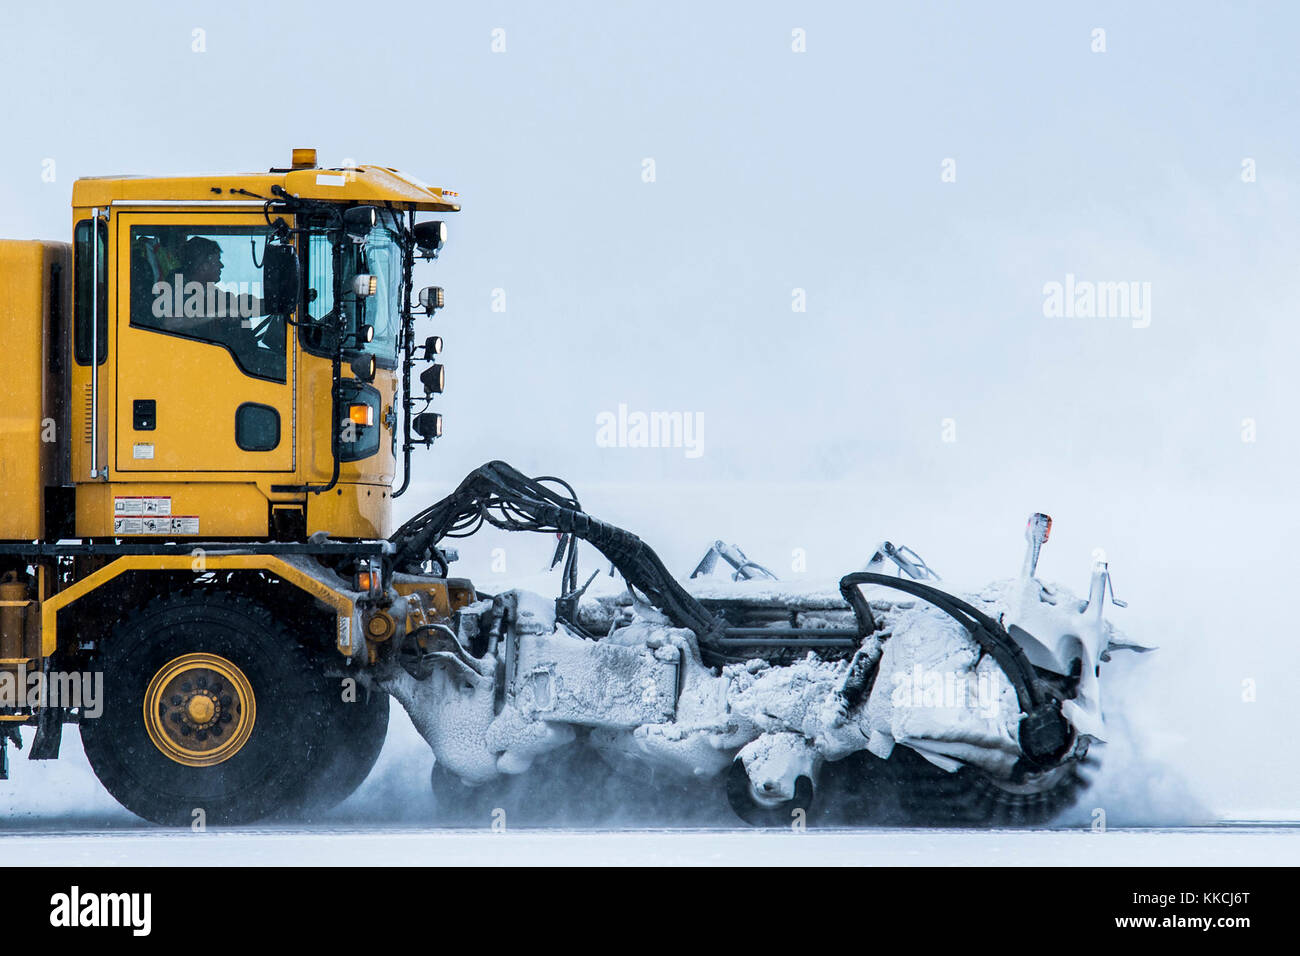 e75360bd3d782 Global Thunder 18 Stock Photos   Global Thunder 18 Stock Images - Alamy